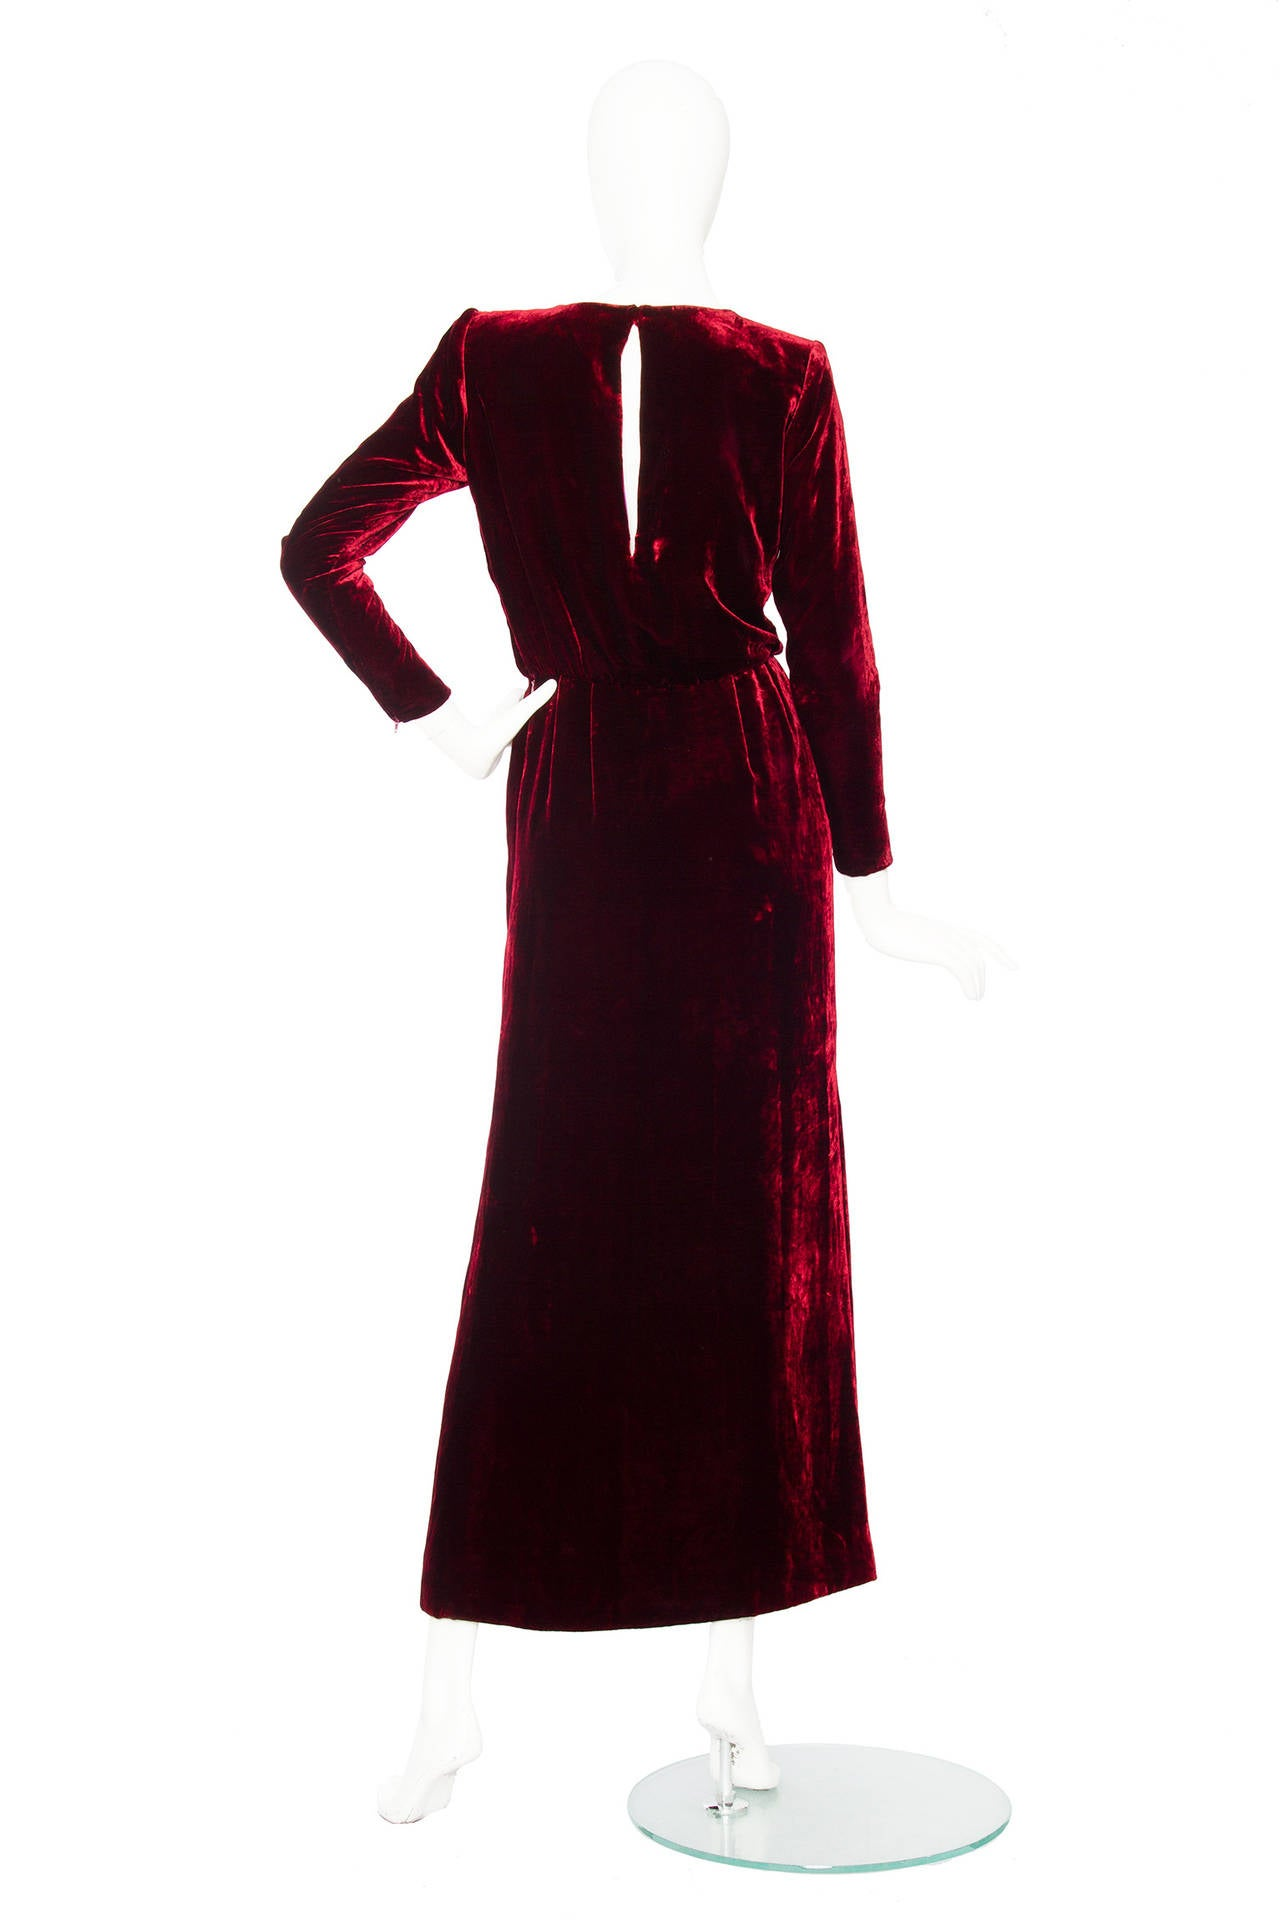 Stunnung Late 1970s Yves Saint Laurent Silk Velvet Haute Couture Dress 4